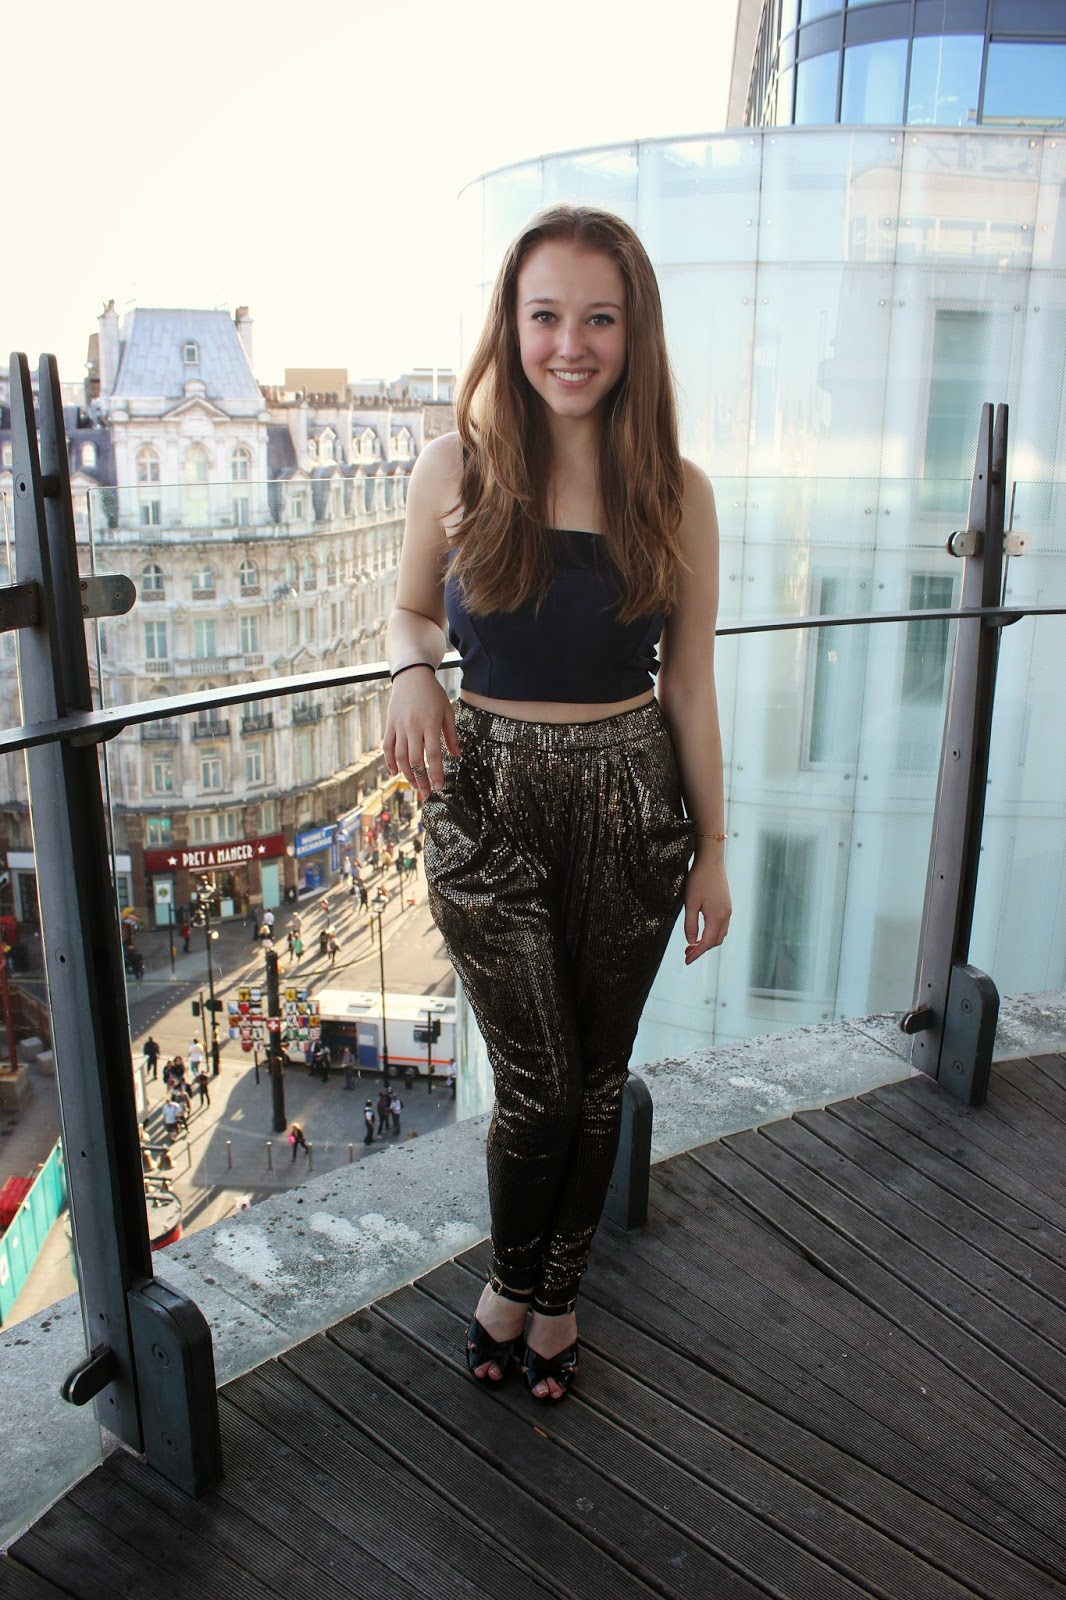 bloggers-love-fashion-week-OOTD-outfit-clothes-sparkly-trousers-crop-top-heels-sequins